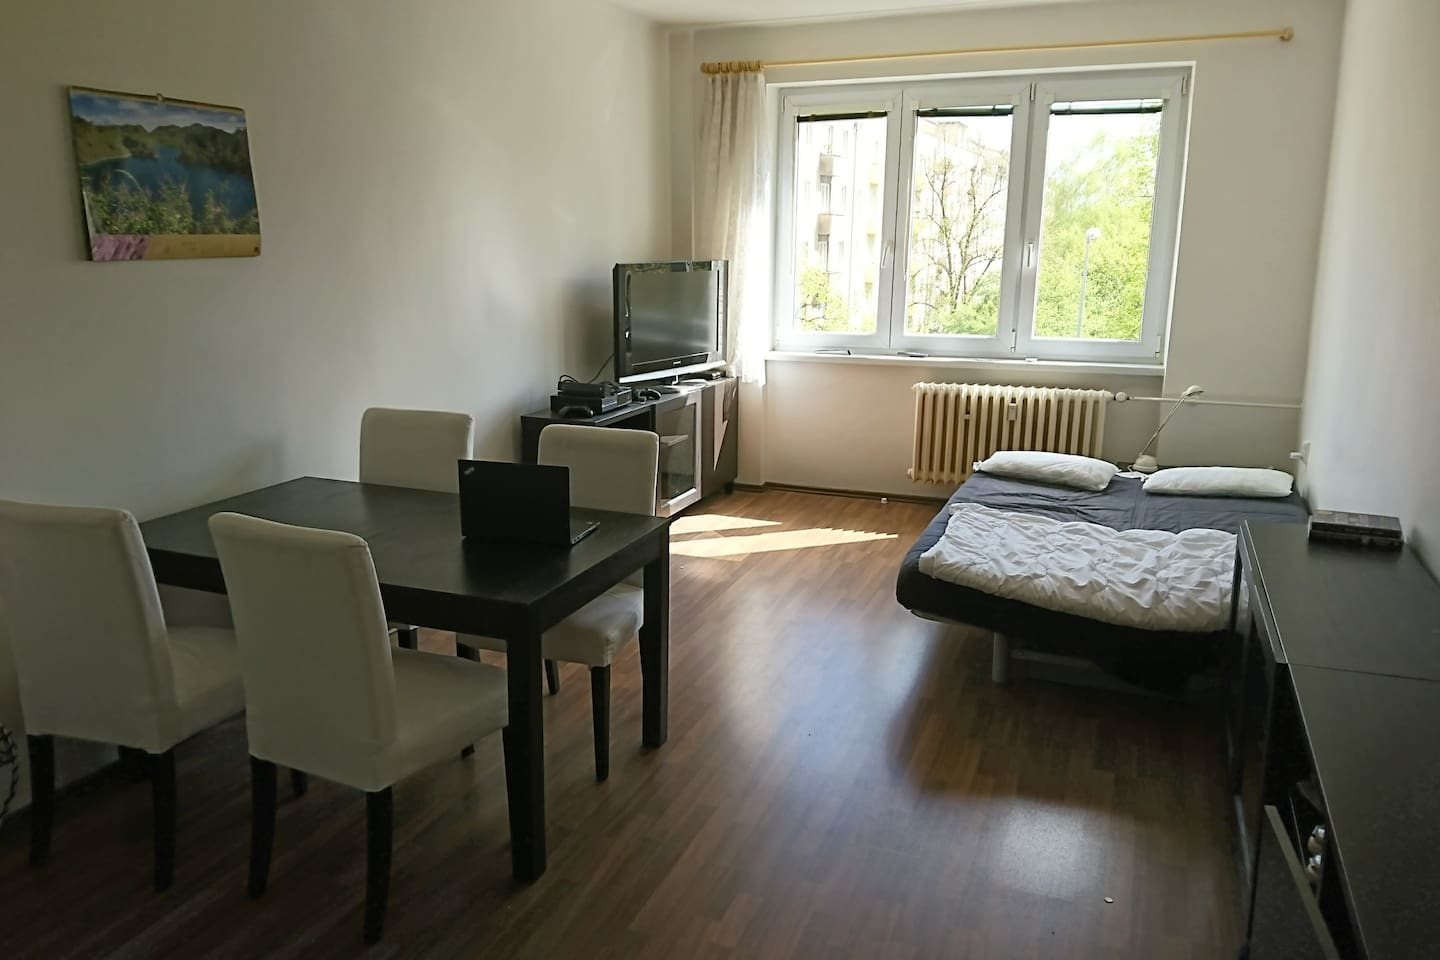 The main room of the aparment